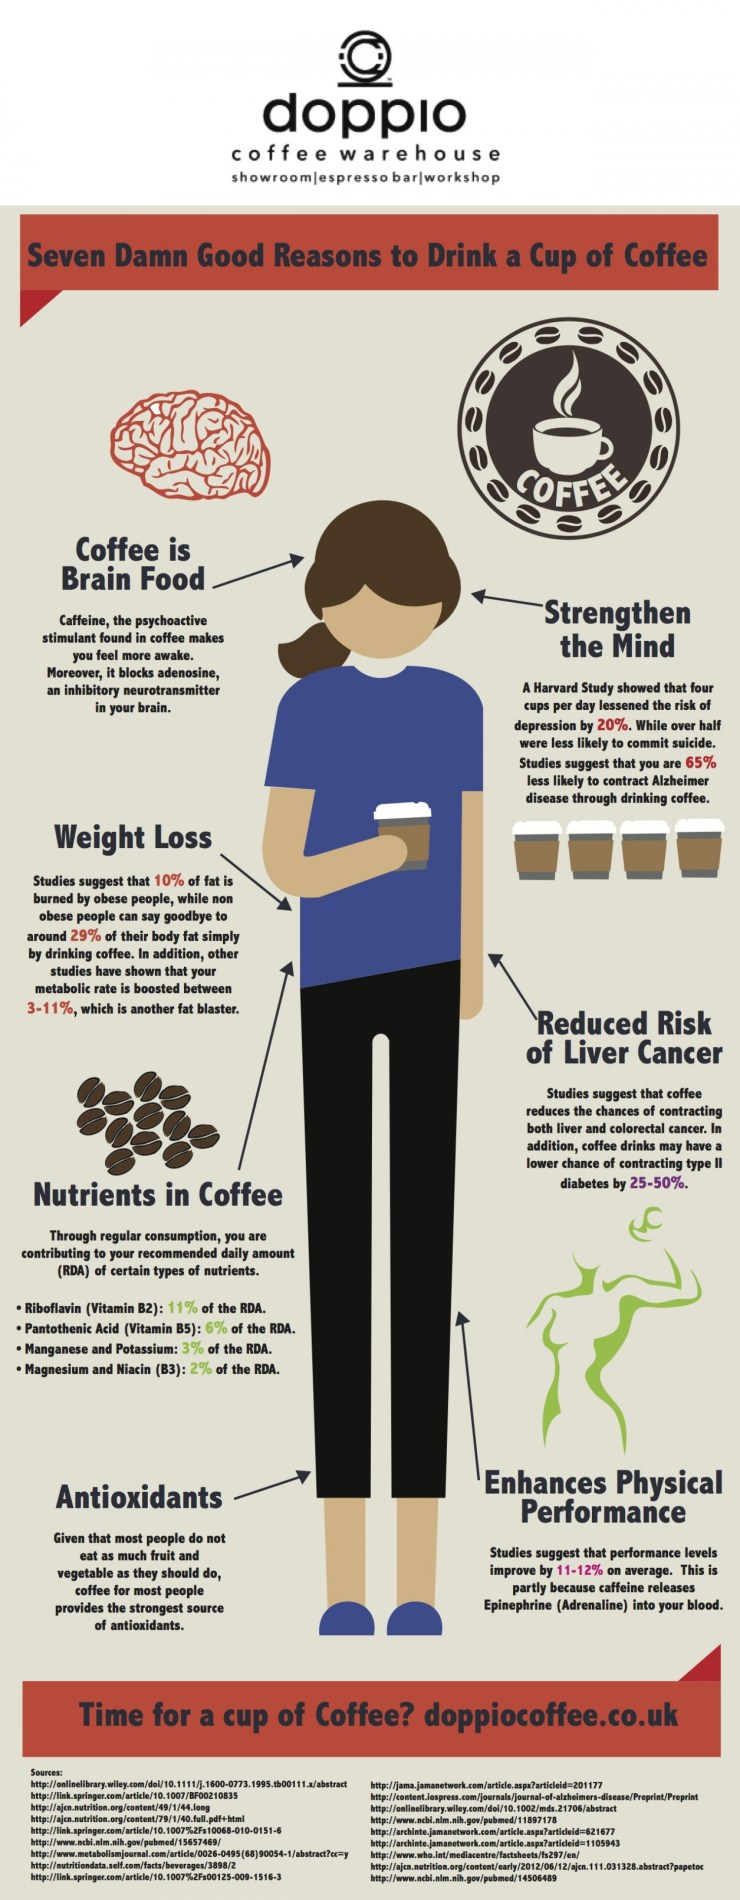 Seven Damp Good Reasons To Drink Coffee